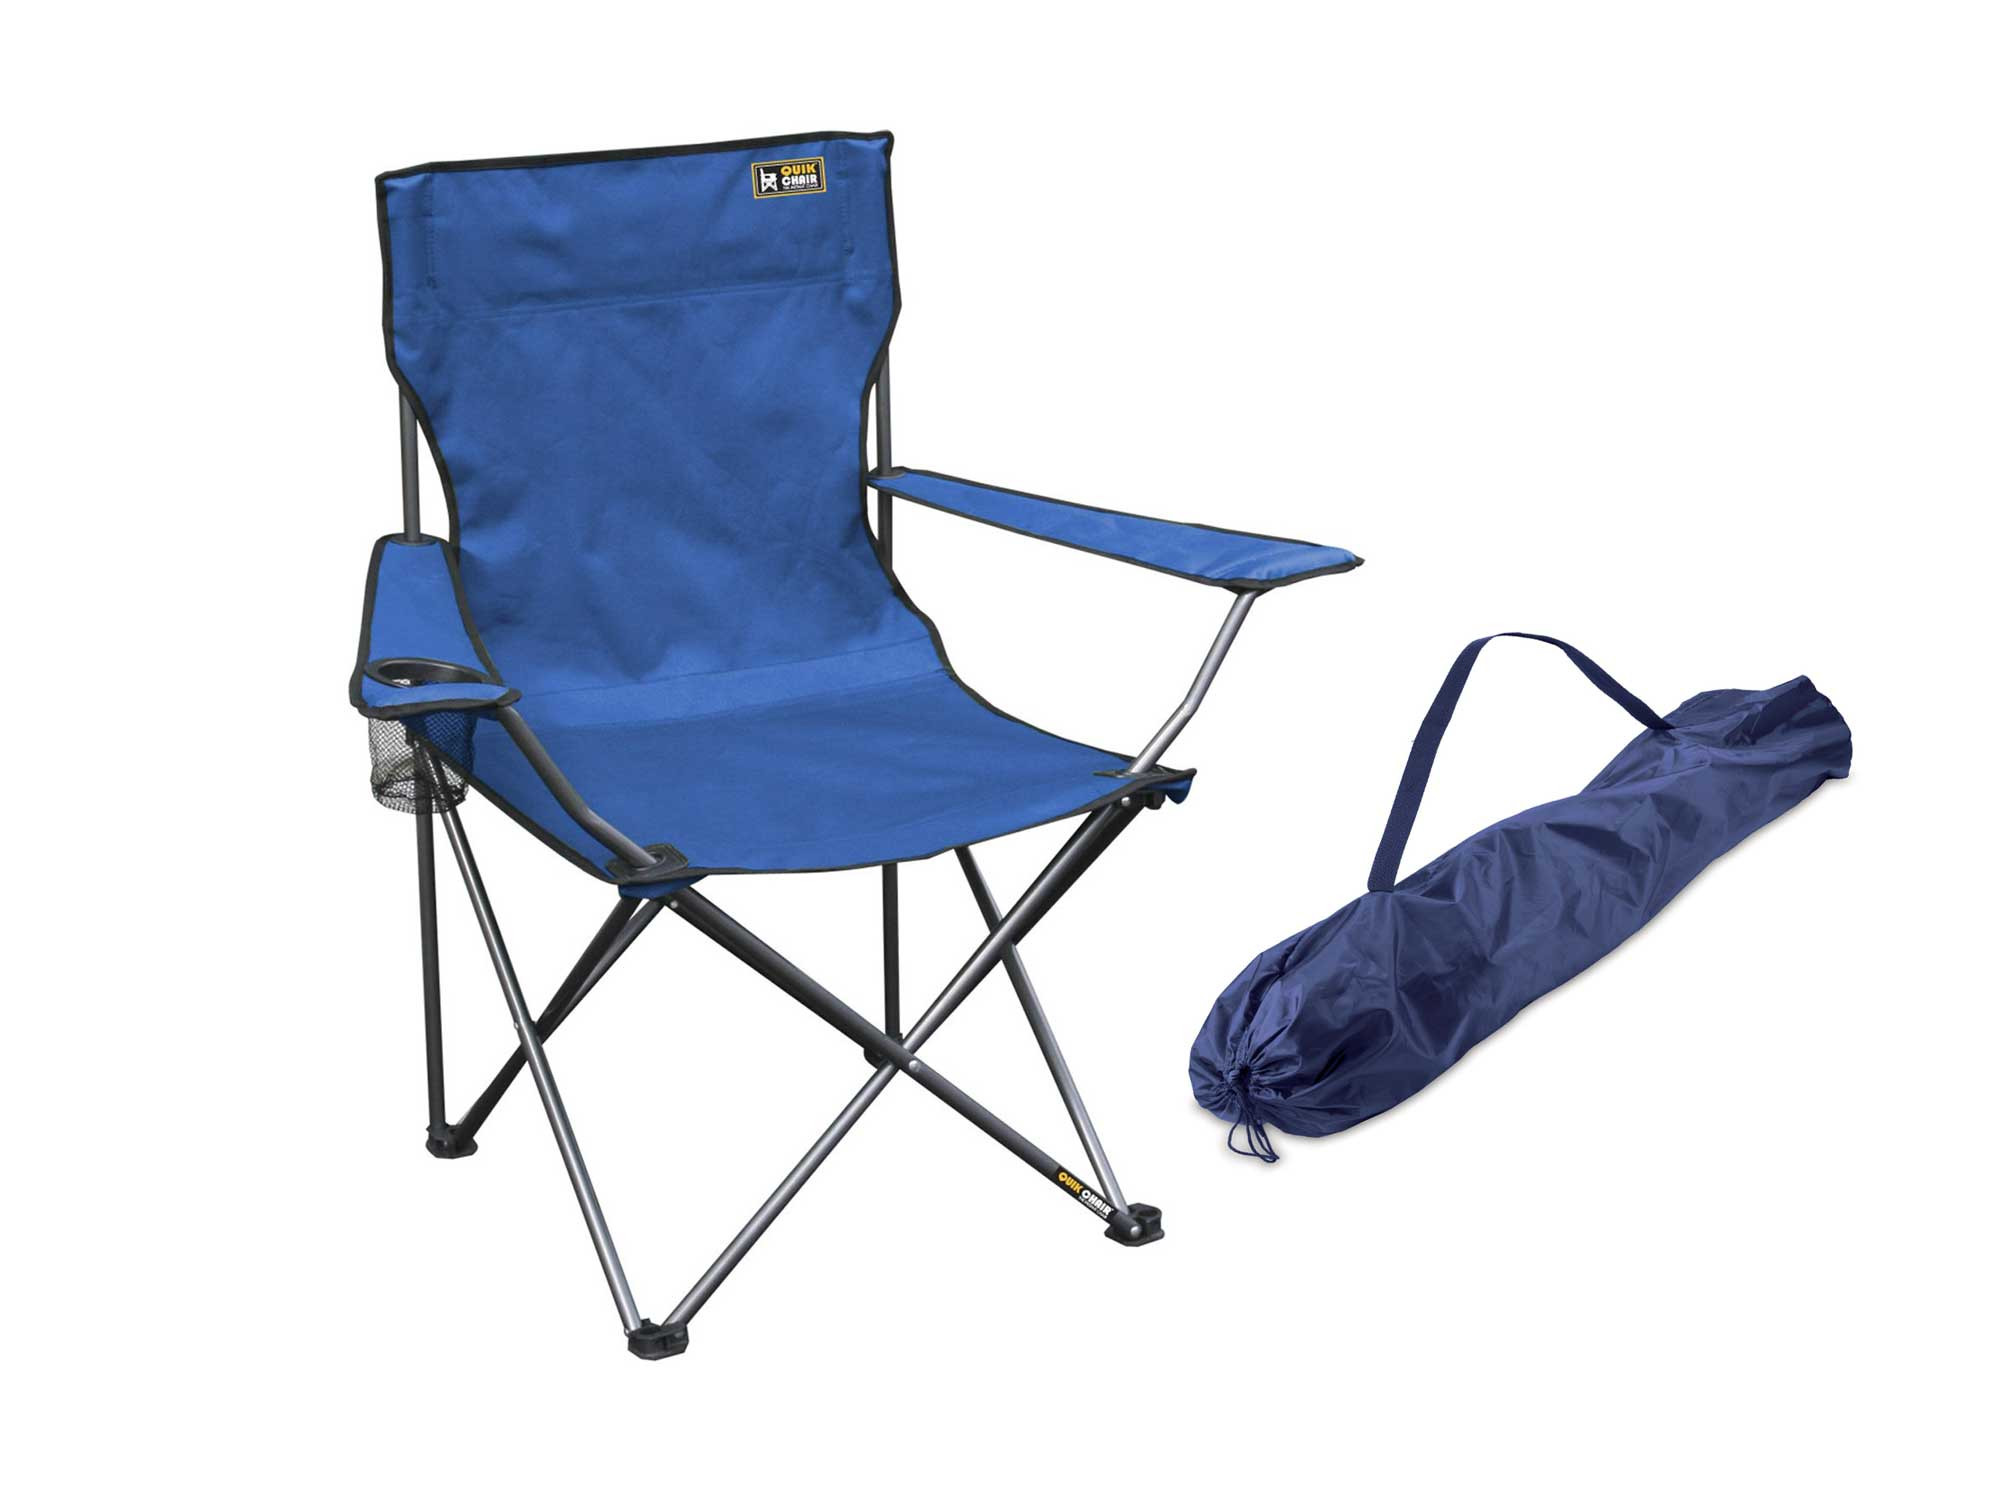 folding camping chairs ... beautiful iceland camping chair ... TYYRXKO